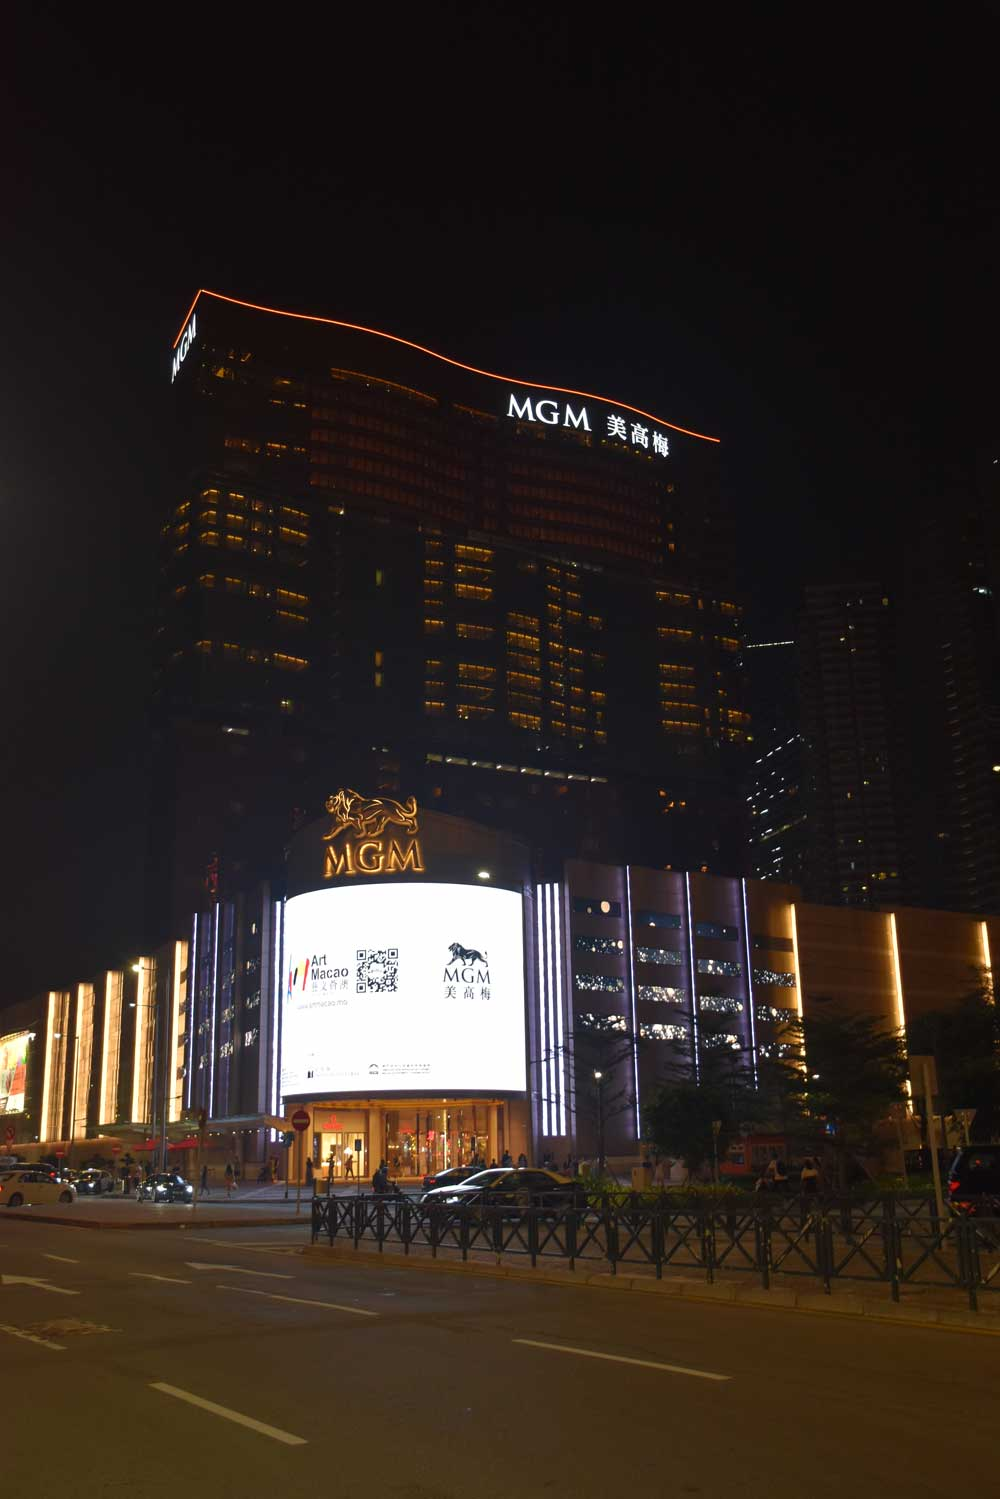 MGM Macau night time shot